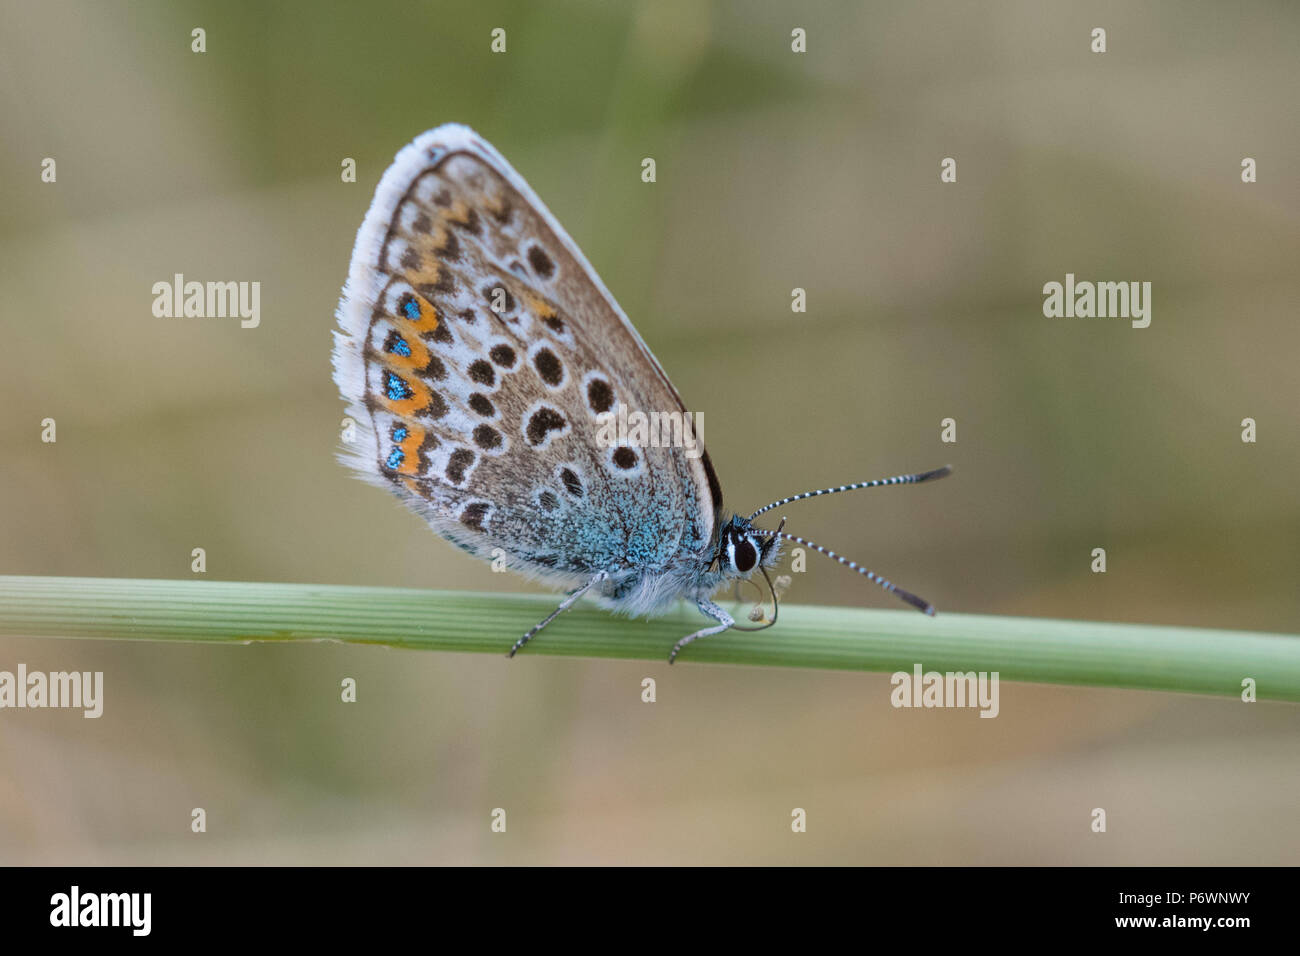 Mexico Towans, Hayle, Cornwall, UK. 3rd July 2018. UK Weather. The heatwave continues in Cornwall, with the rare Silver studded blue butterflies out on the sand dunes near Hayle. Credit: Simon Maycock/Alamy Live News - Stock Image